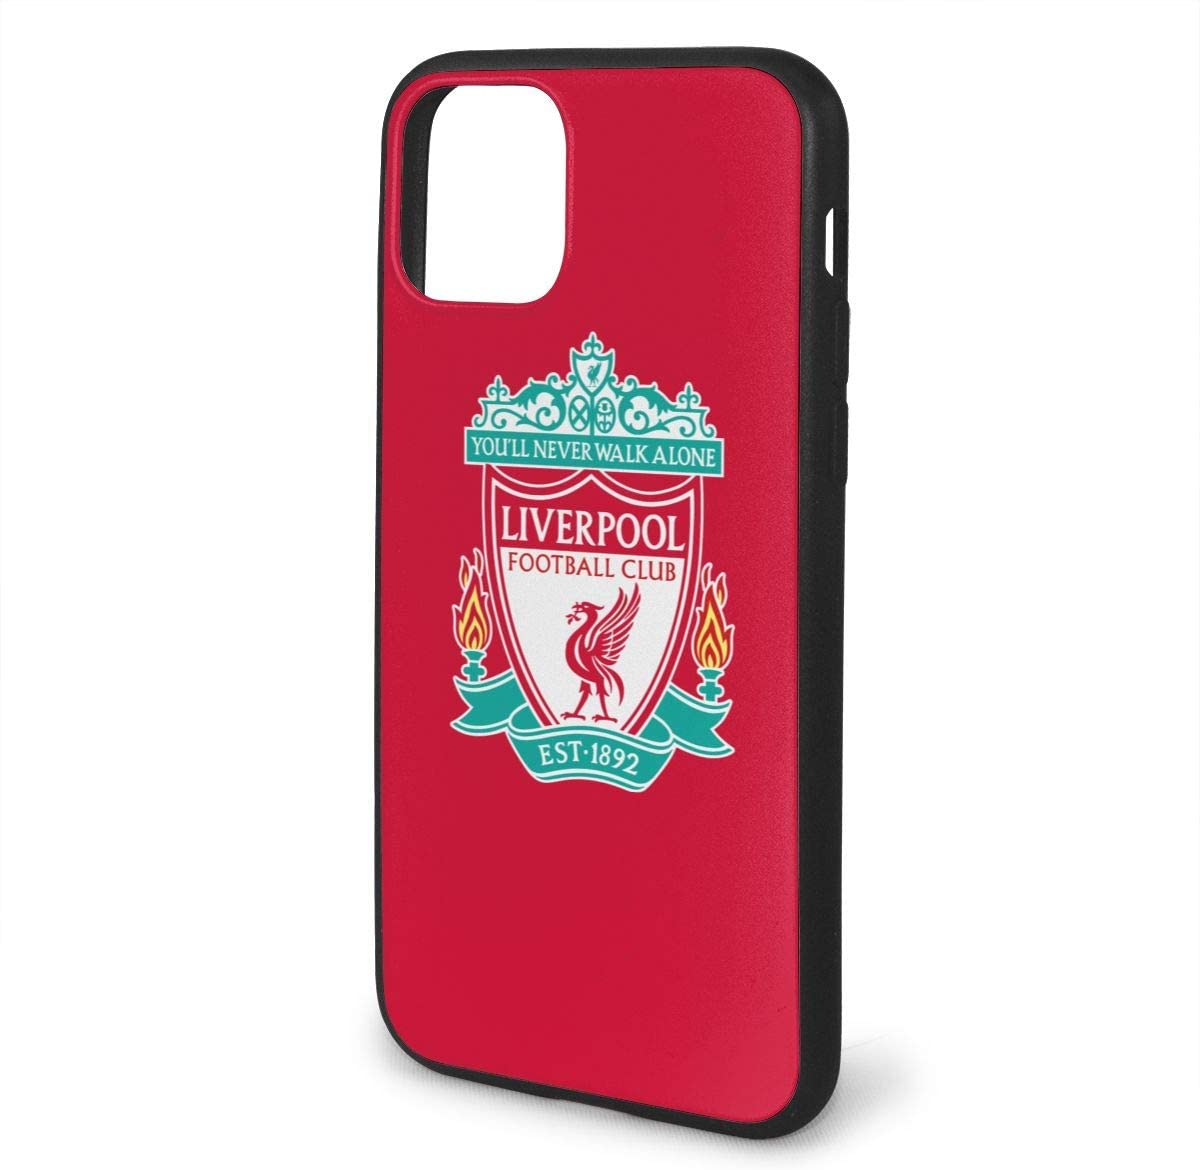 CRTY Liverpool Phone Case Fashion Design for Unisex Hard TPU Shockproof Cover